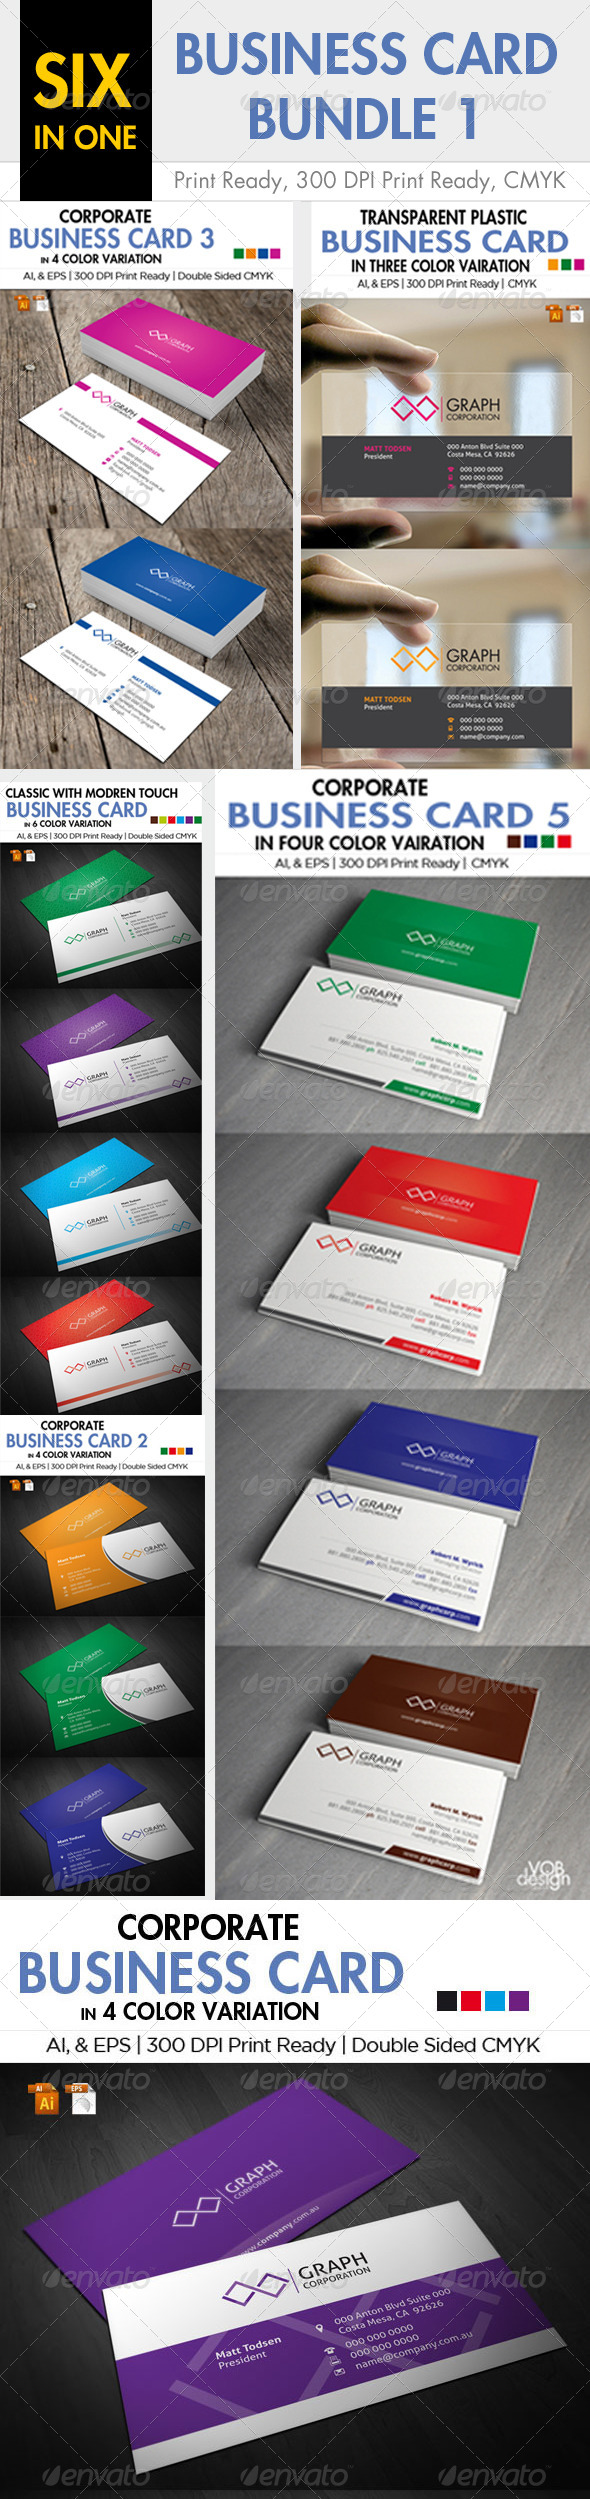 6 in one Business Card Bundle 1